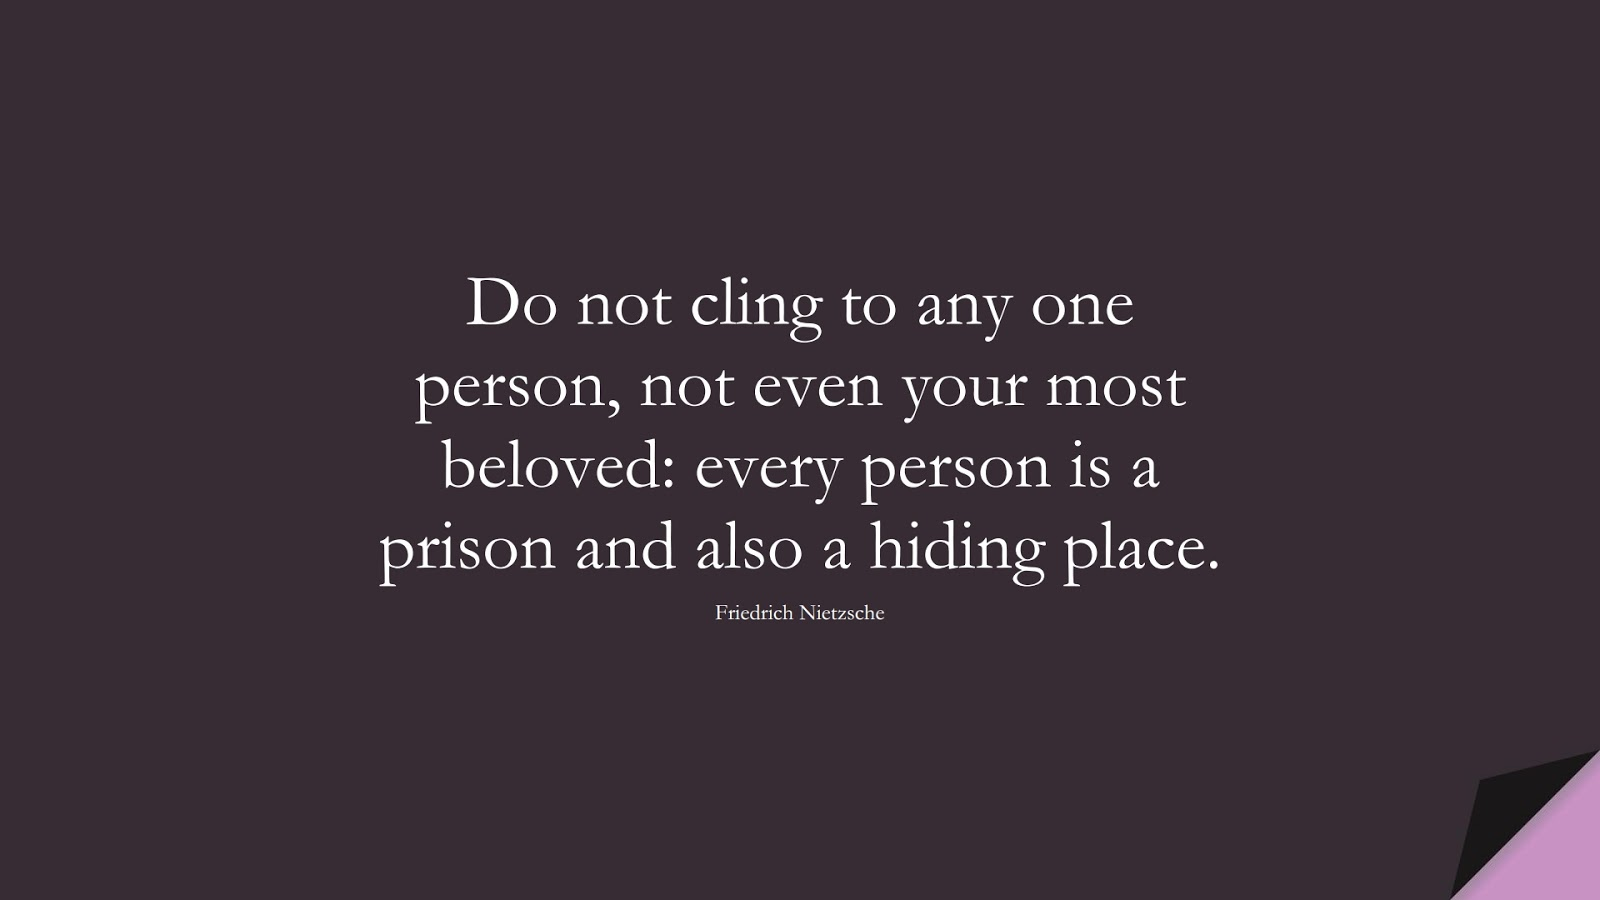 Do not cling to any one person, not even your most beloved: every person is a prison and also a hiding place. (Friedrich Nietzsche);  #RelationshipQuotes